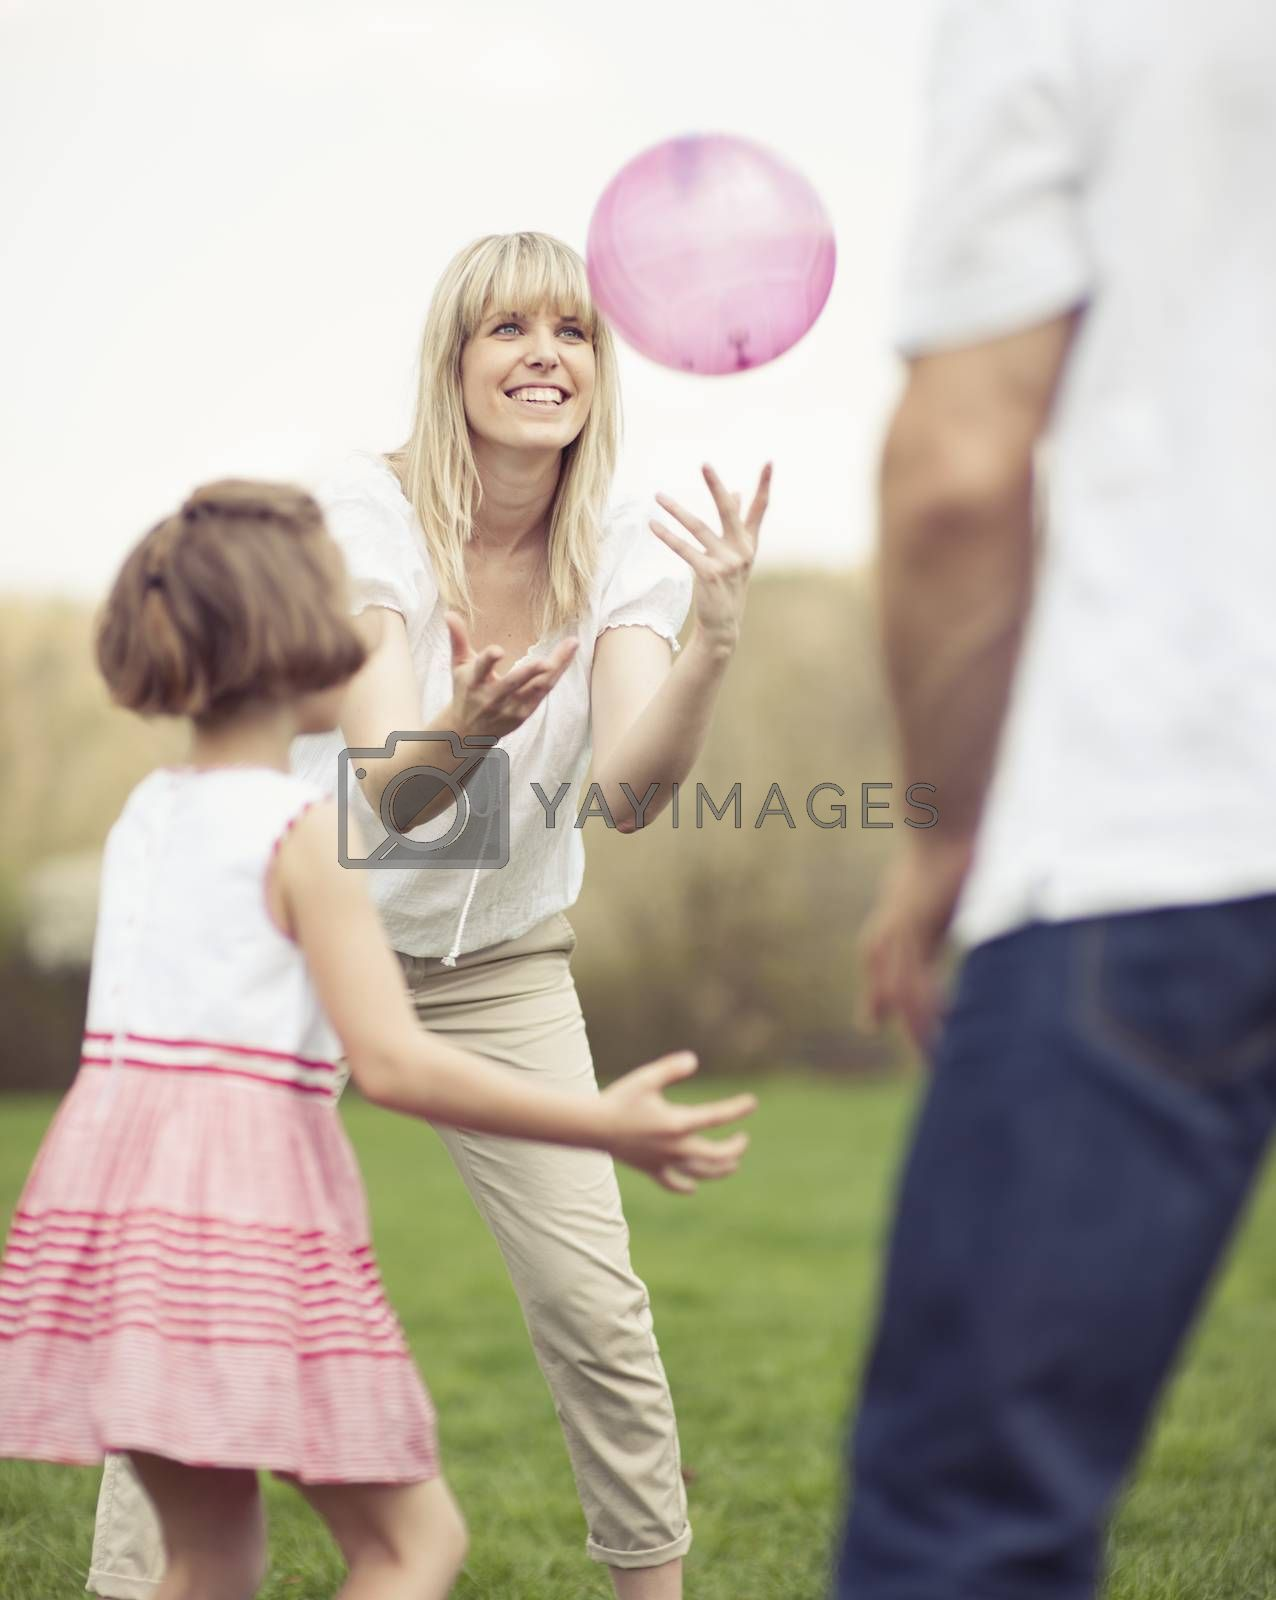 Father mother and daughter throwing ball to each other in the park